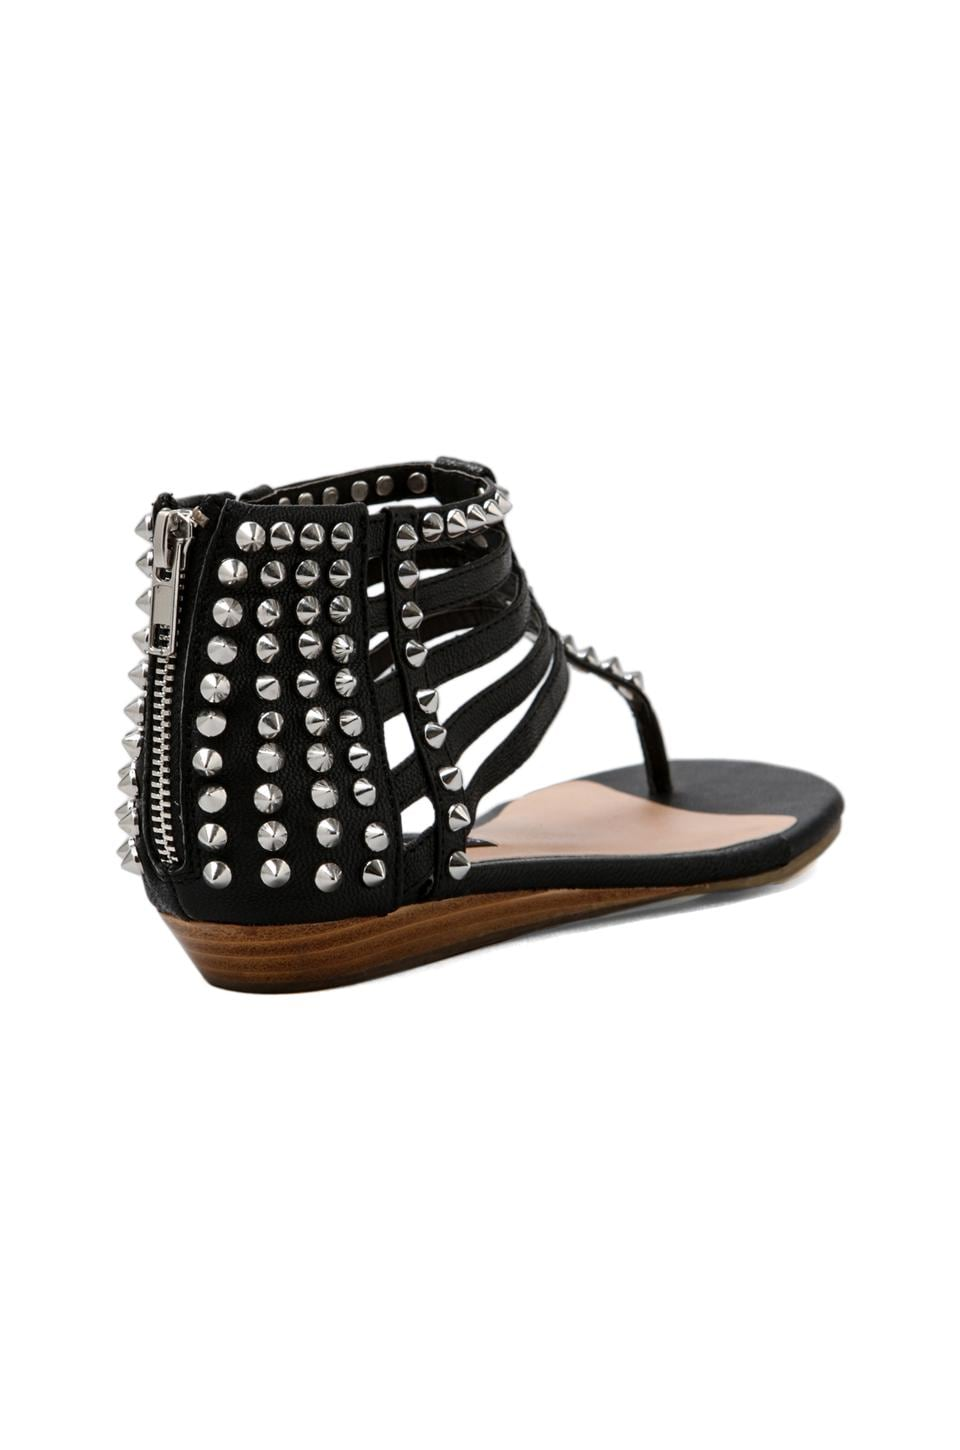 Steven Indyana Sandal in Black Leather